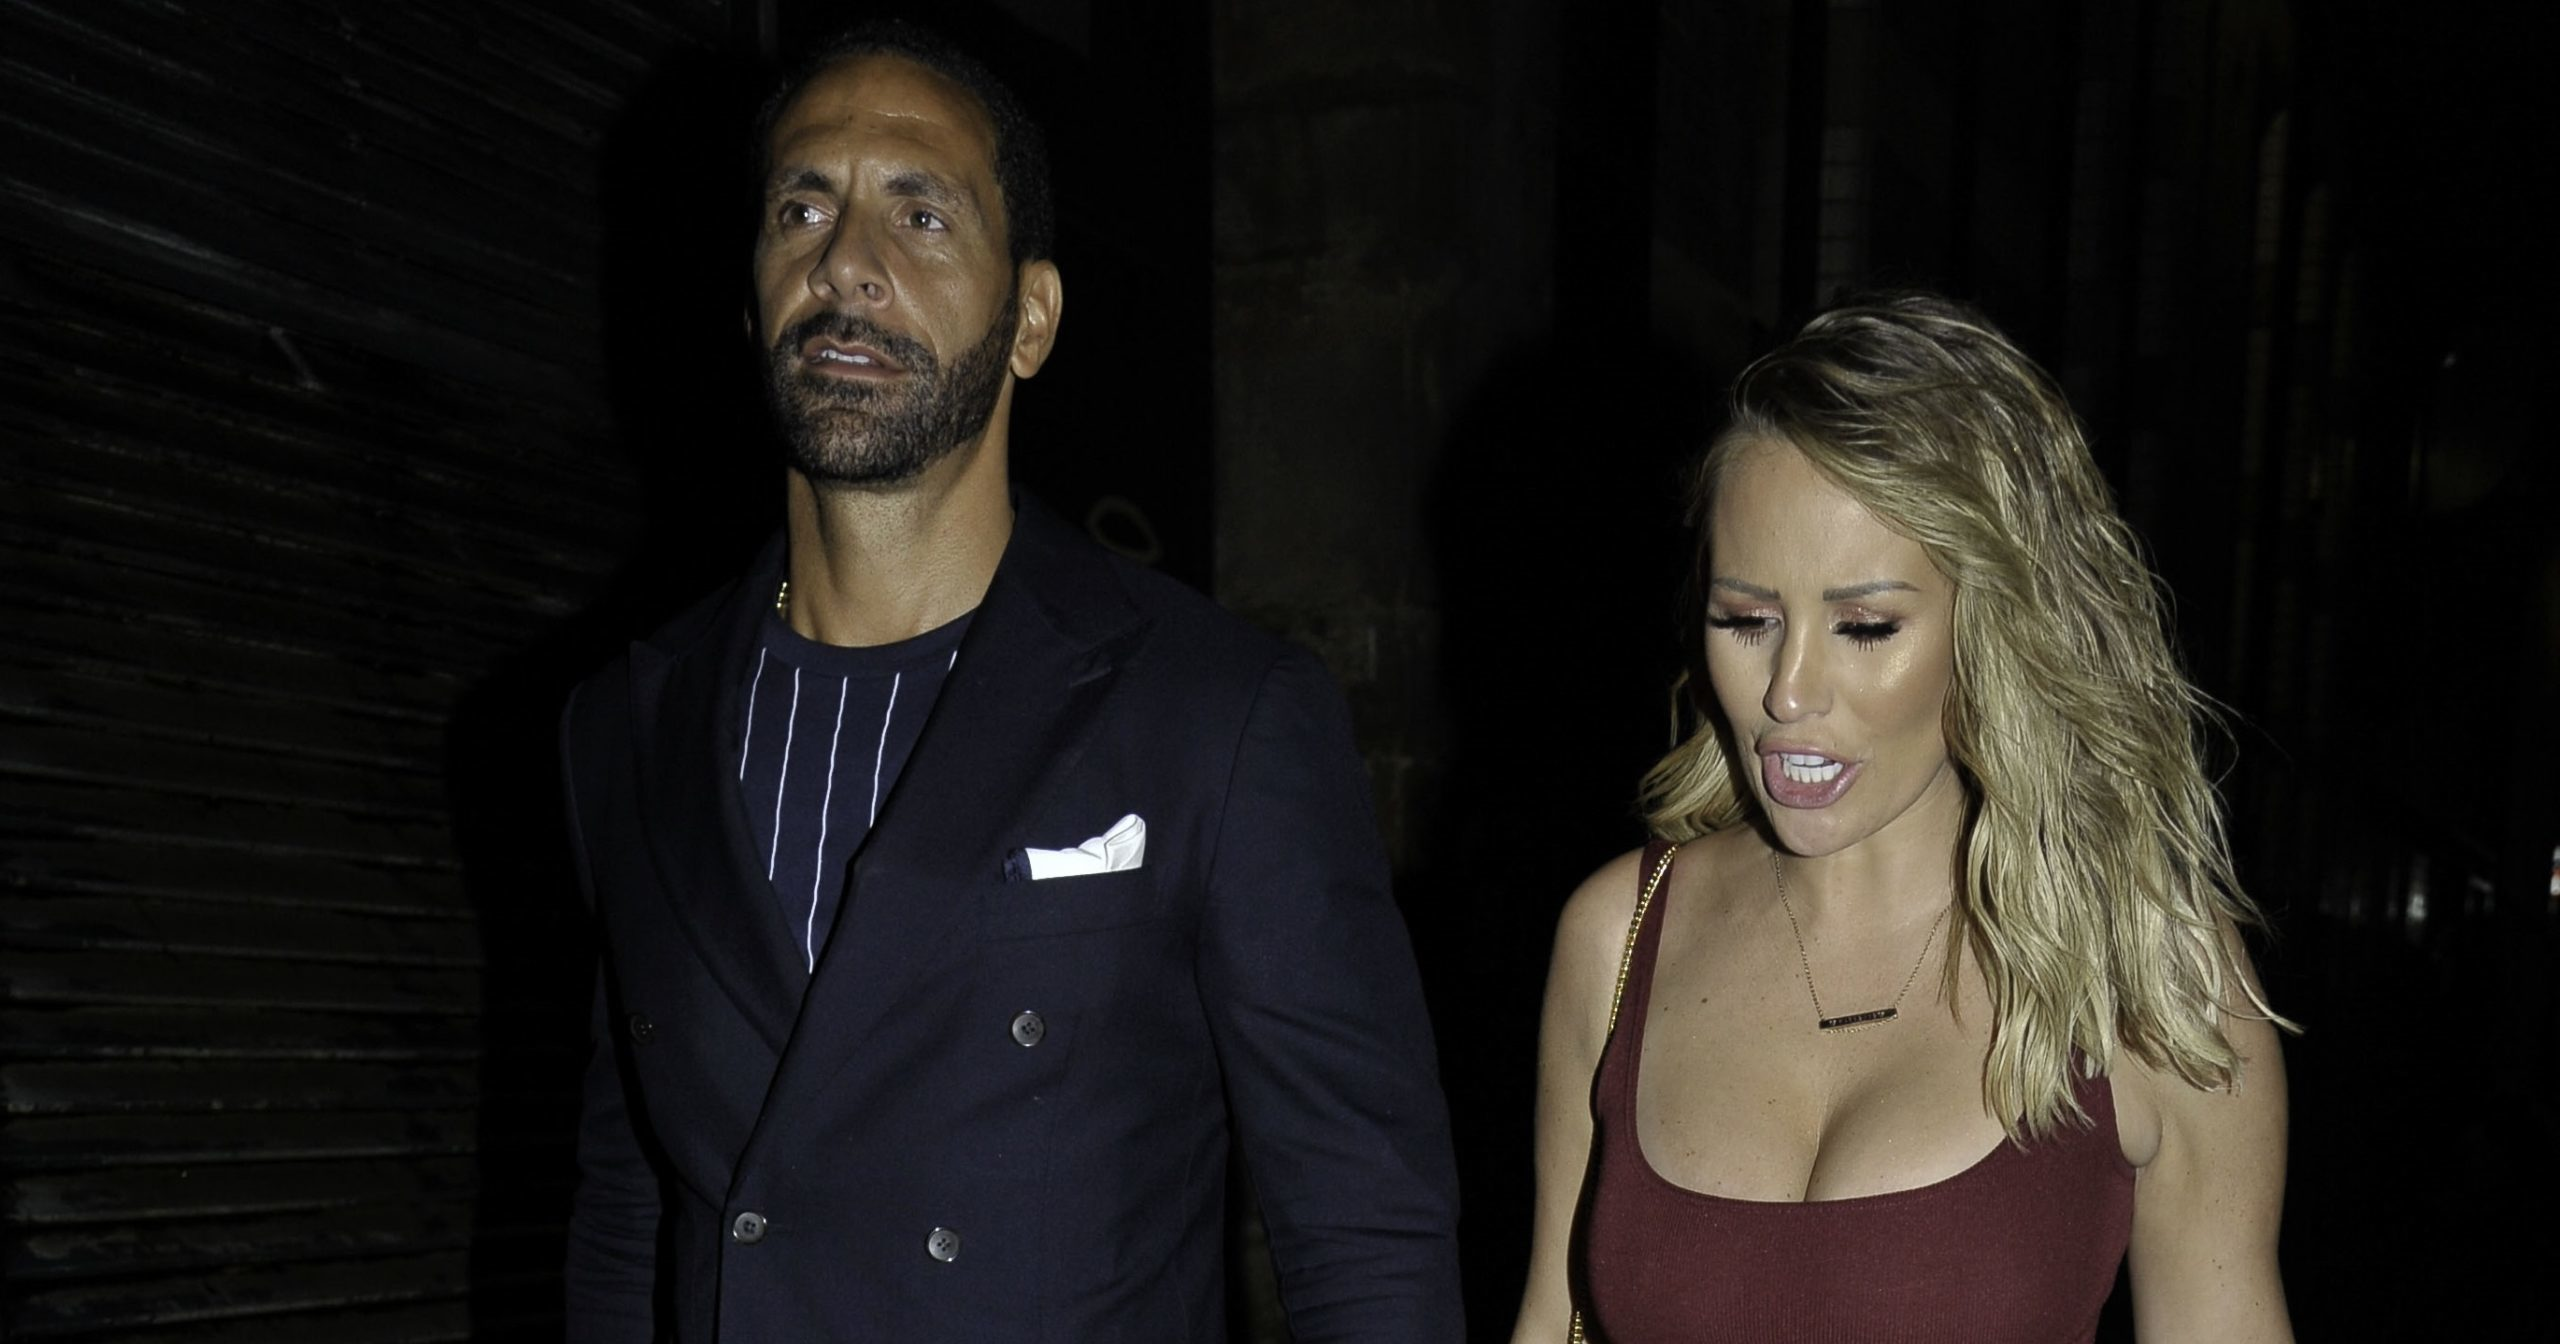 Rio Ferdinand slams troll who accused wife Kate of having too much time on her hands